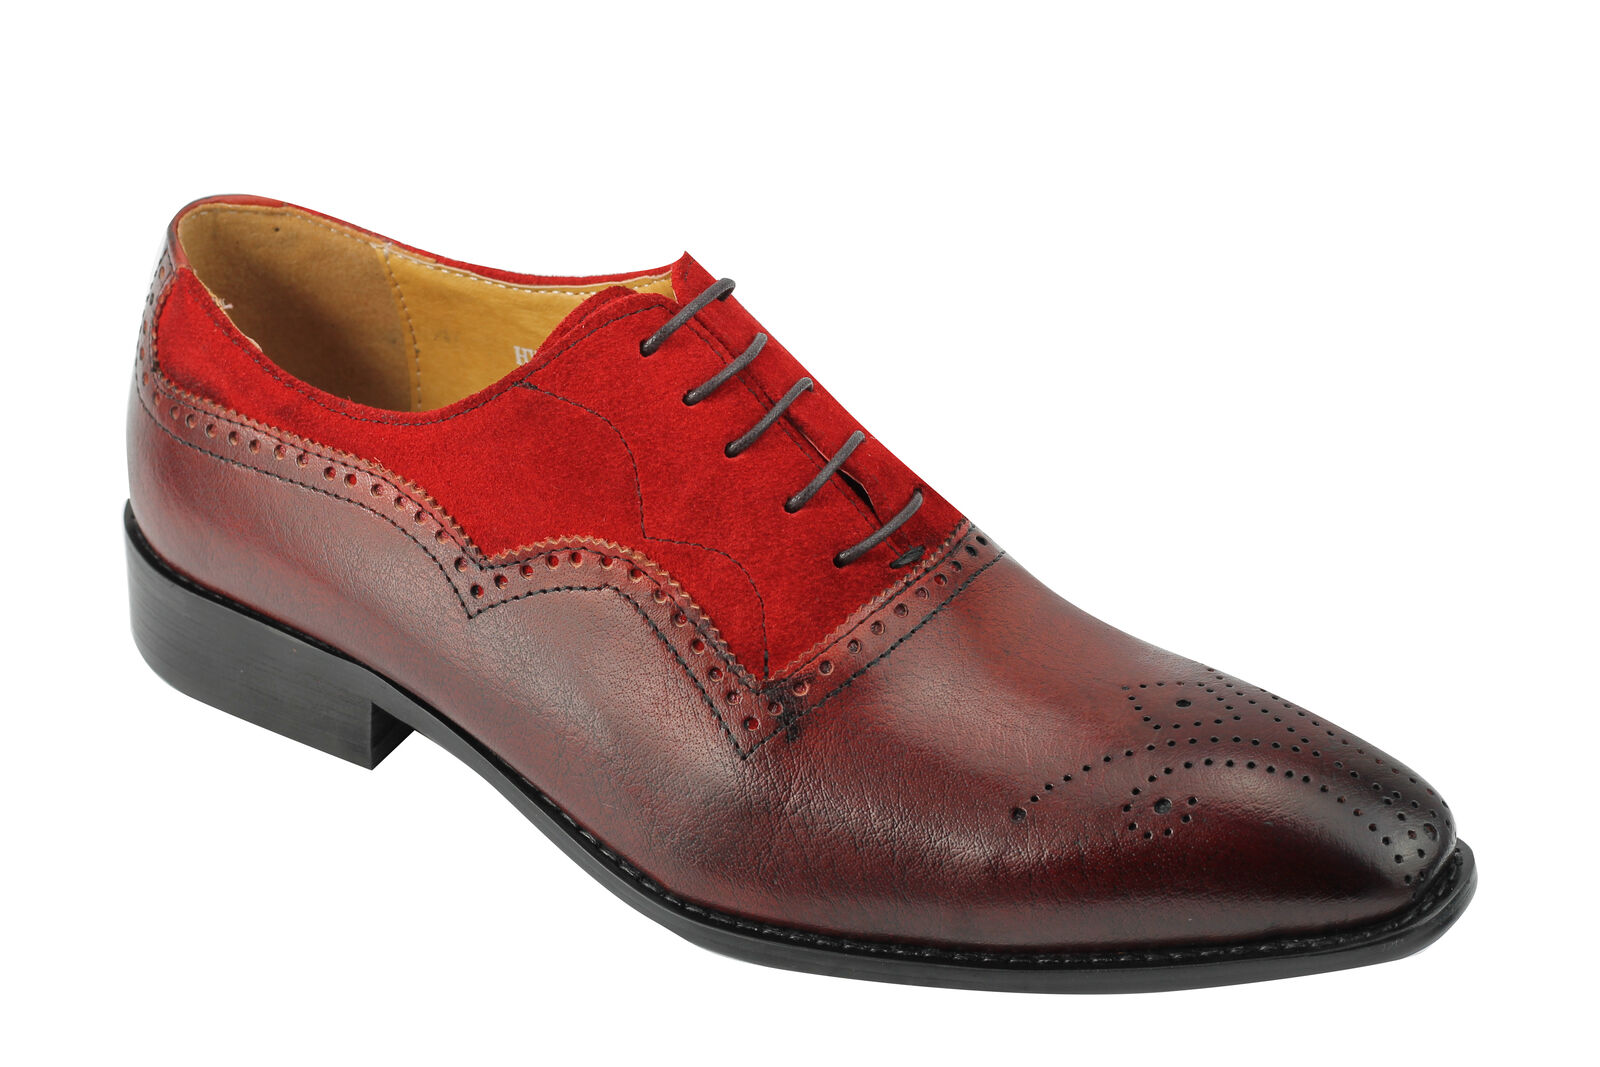 Men's Two Tone Real Suede & Leather Red Oxford Lace up Brogue Smart Dress shoes